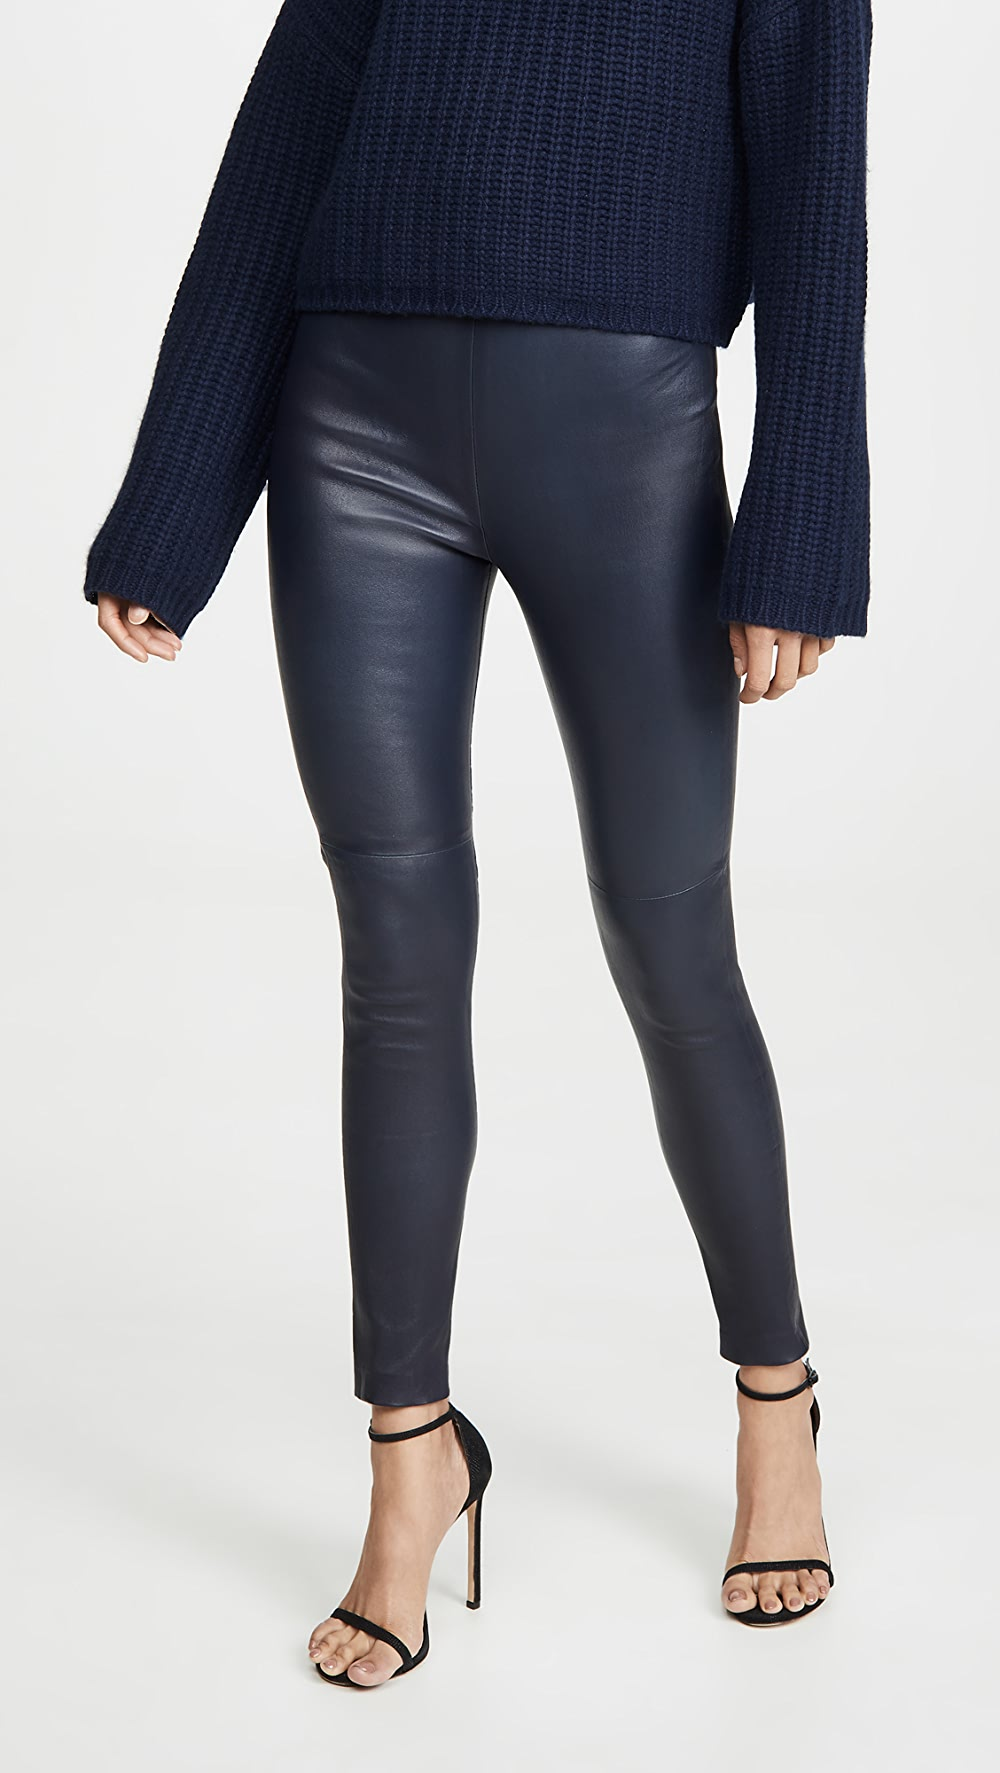 Diligent Sablyn - High Waisted Leather Pants Attractive And Durable